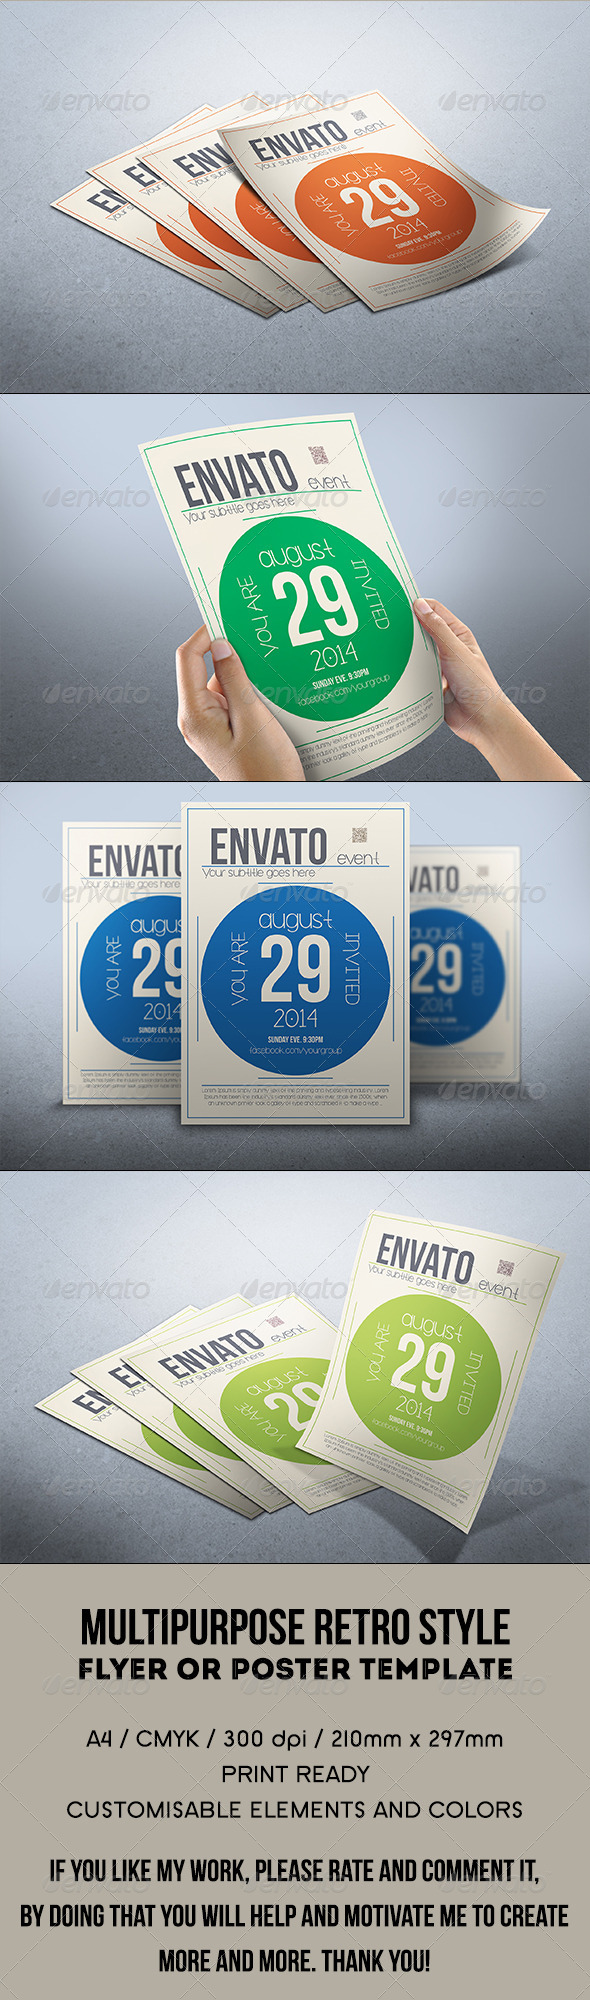 GraphicRiver Multipurpose retro flyer 7949249